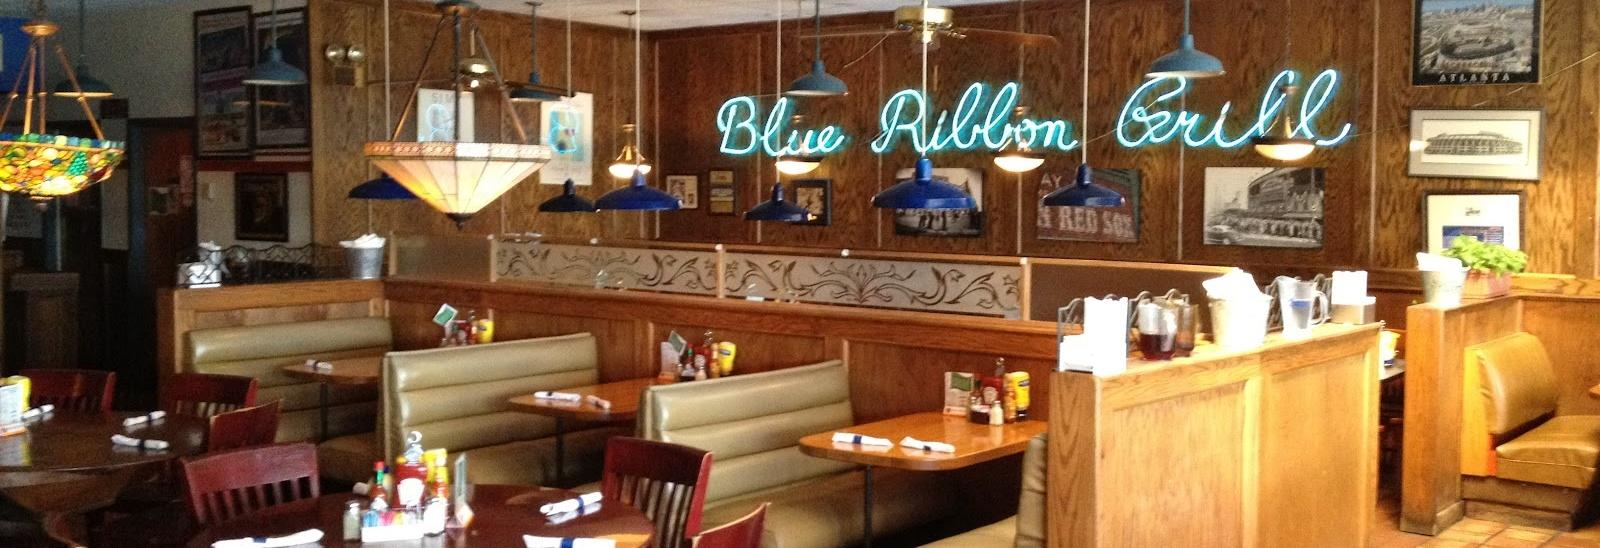 Blue Ribbon Grill in Tucker, GA Banner ad